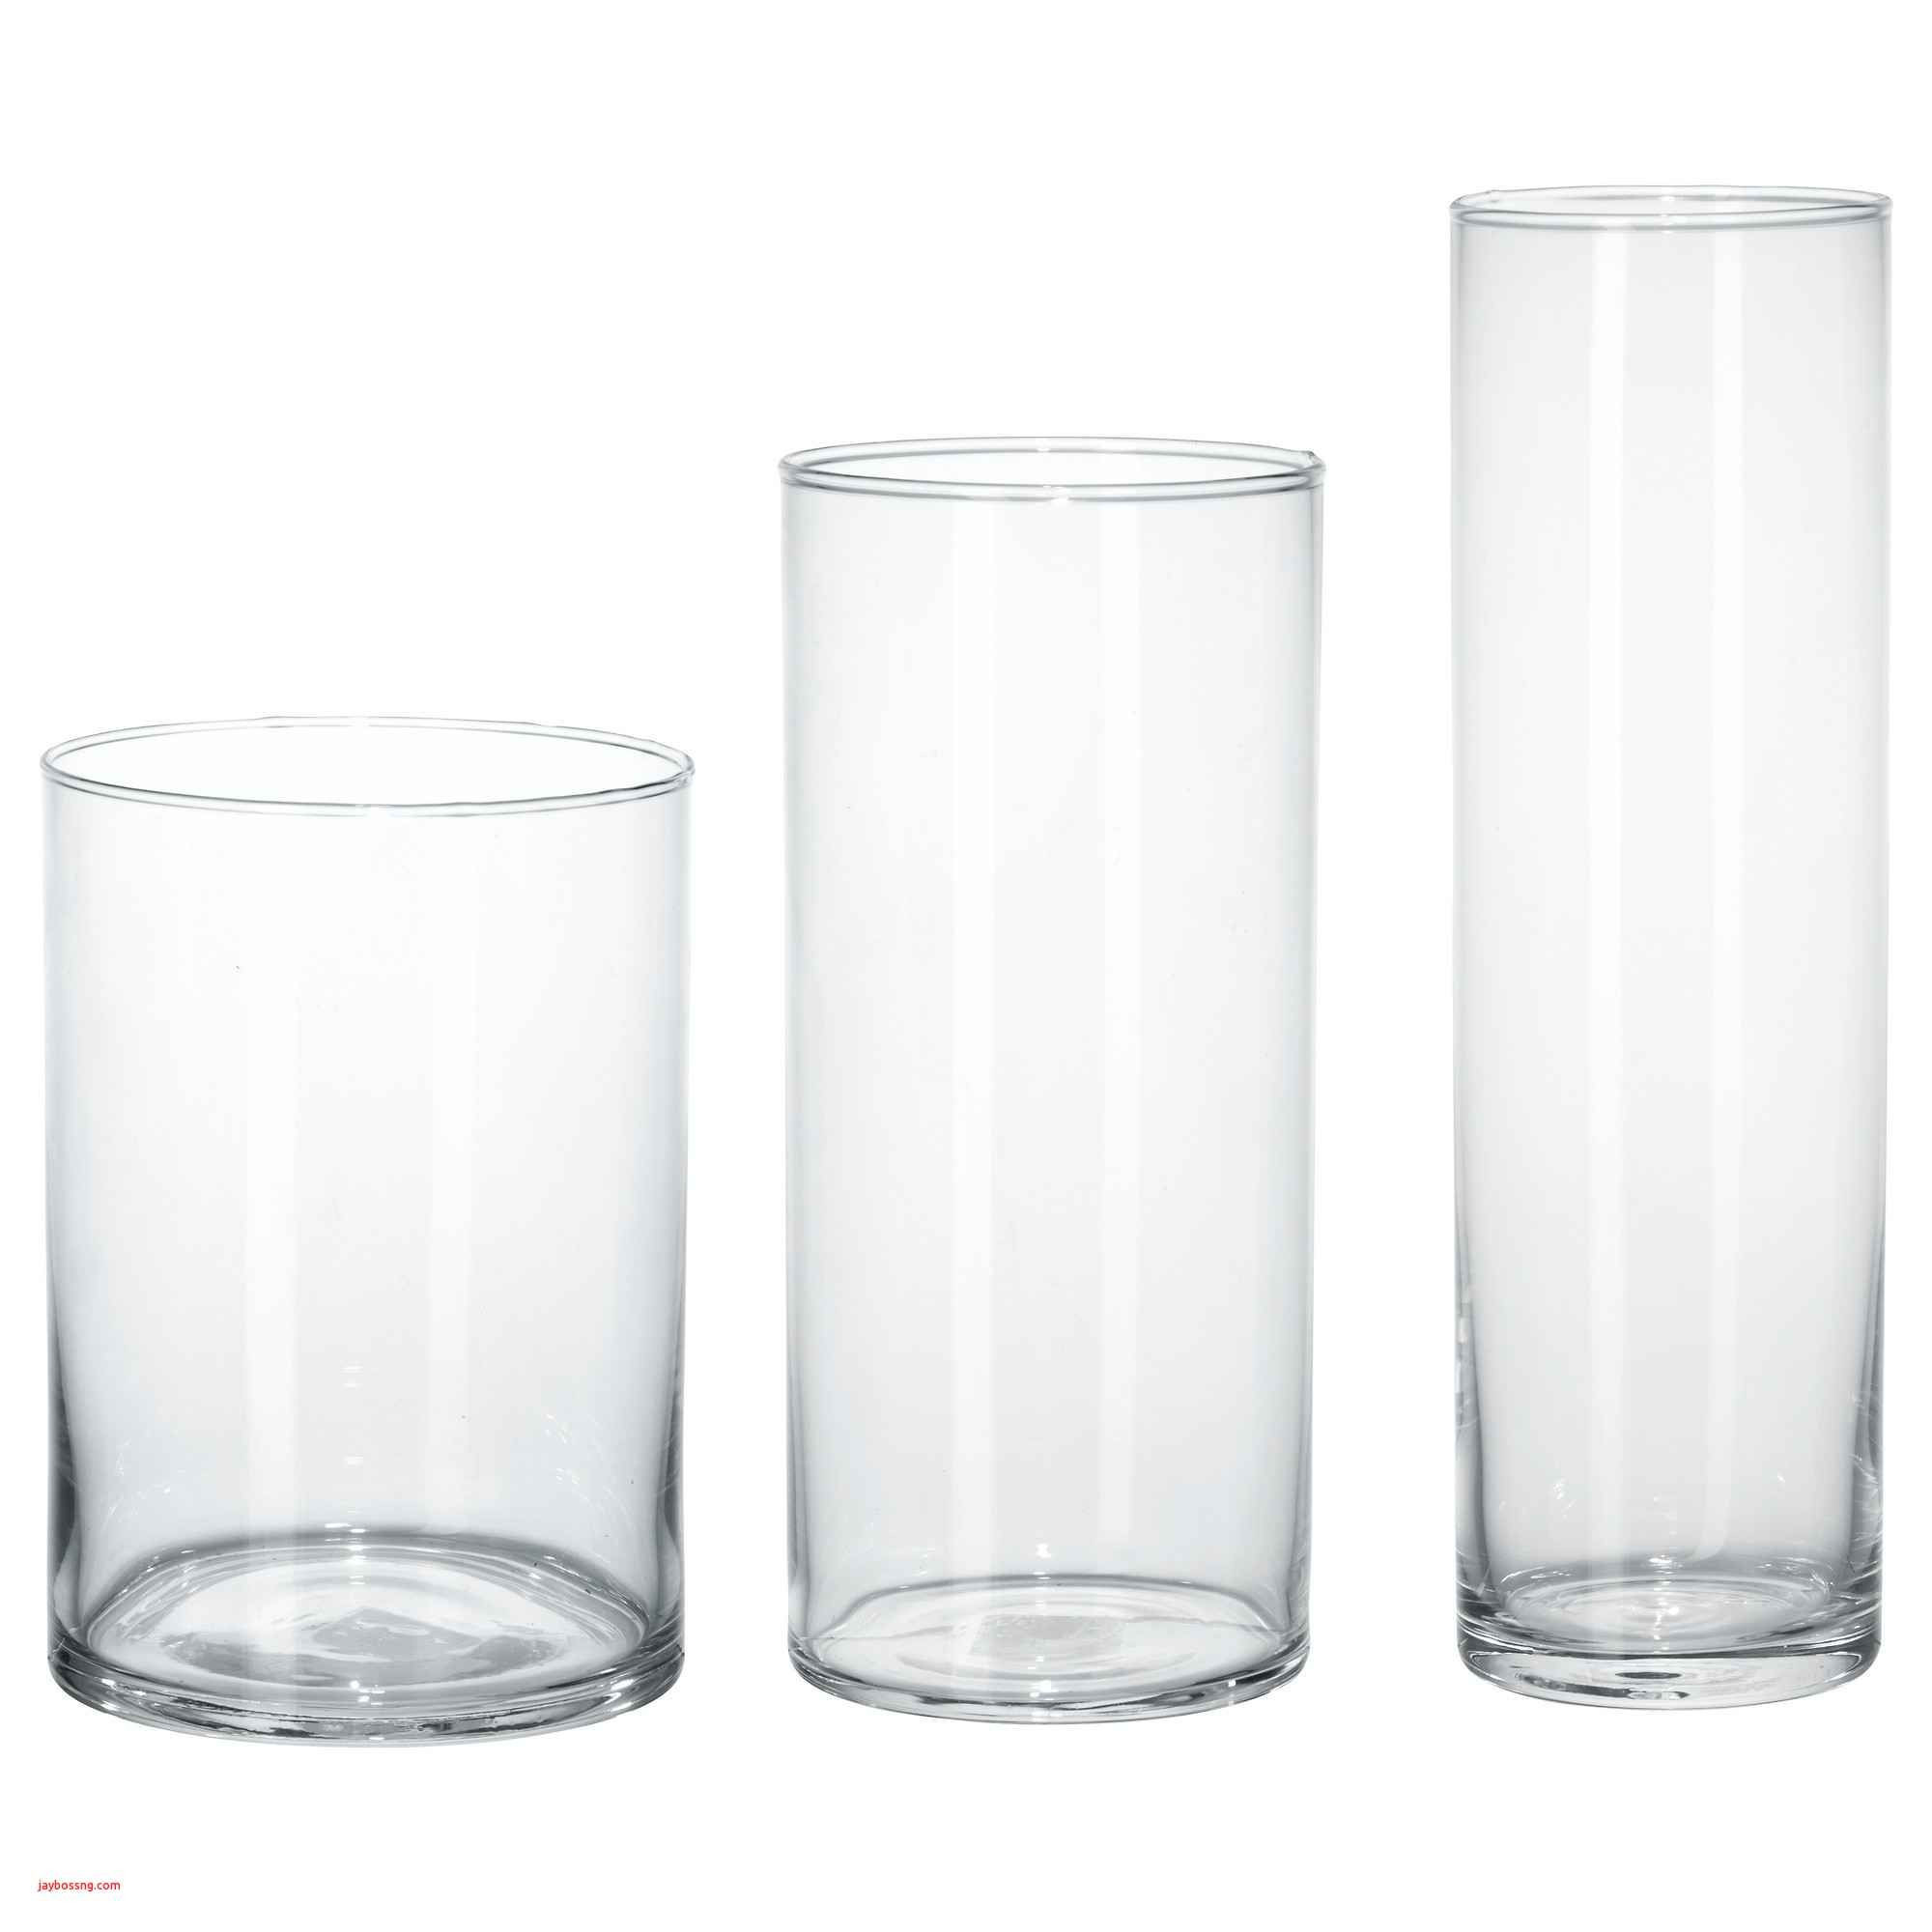 colored glass vases for centerpieces of brown glass vase fresh ikea white table created pe s5h vases ikea in brown glass vase fresh ikea white table created pe s5h vases ikea vase i 0d bladet